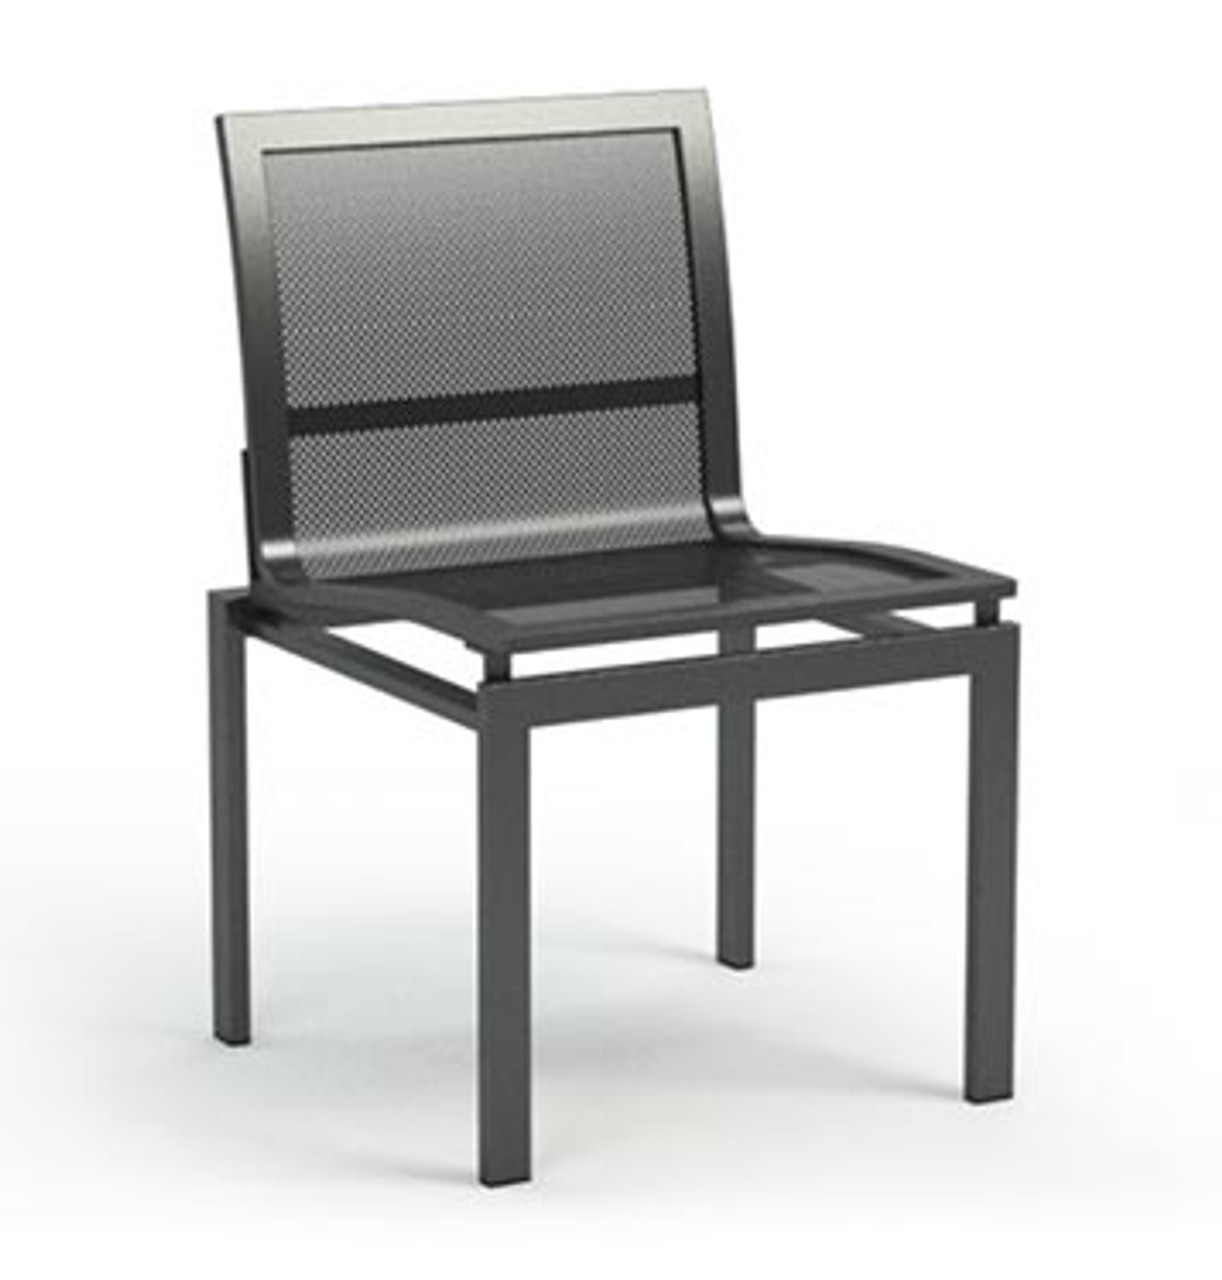 Remarkable Homecrest Allure Mesh Armless Cafe Chair Stack Able Home Interior And Landscaping Ologienasavecom